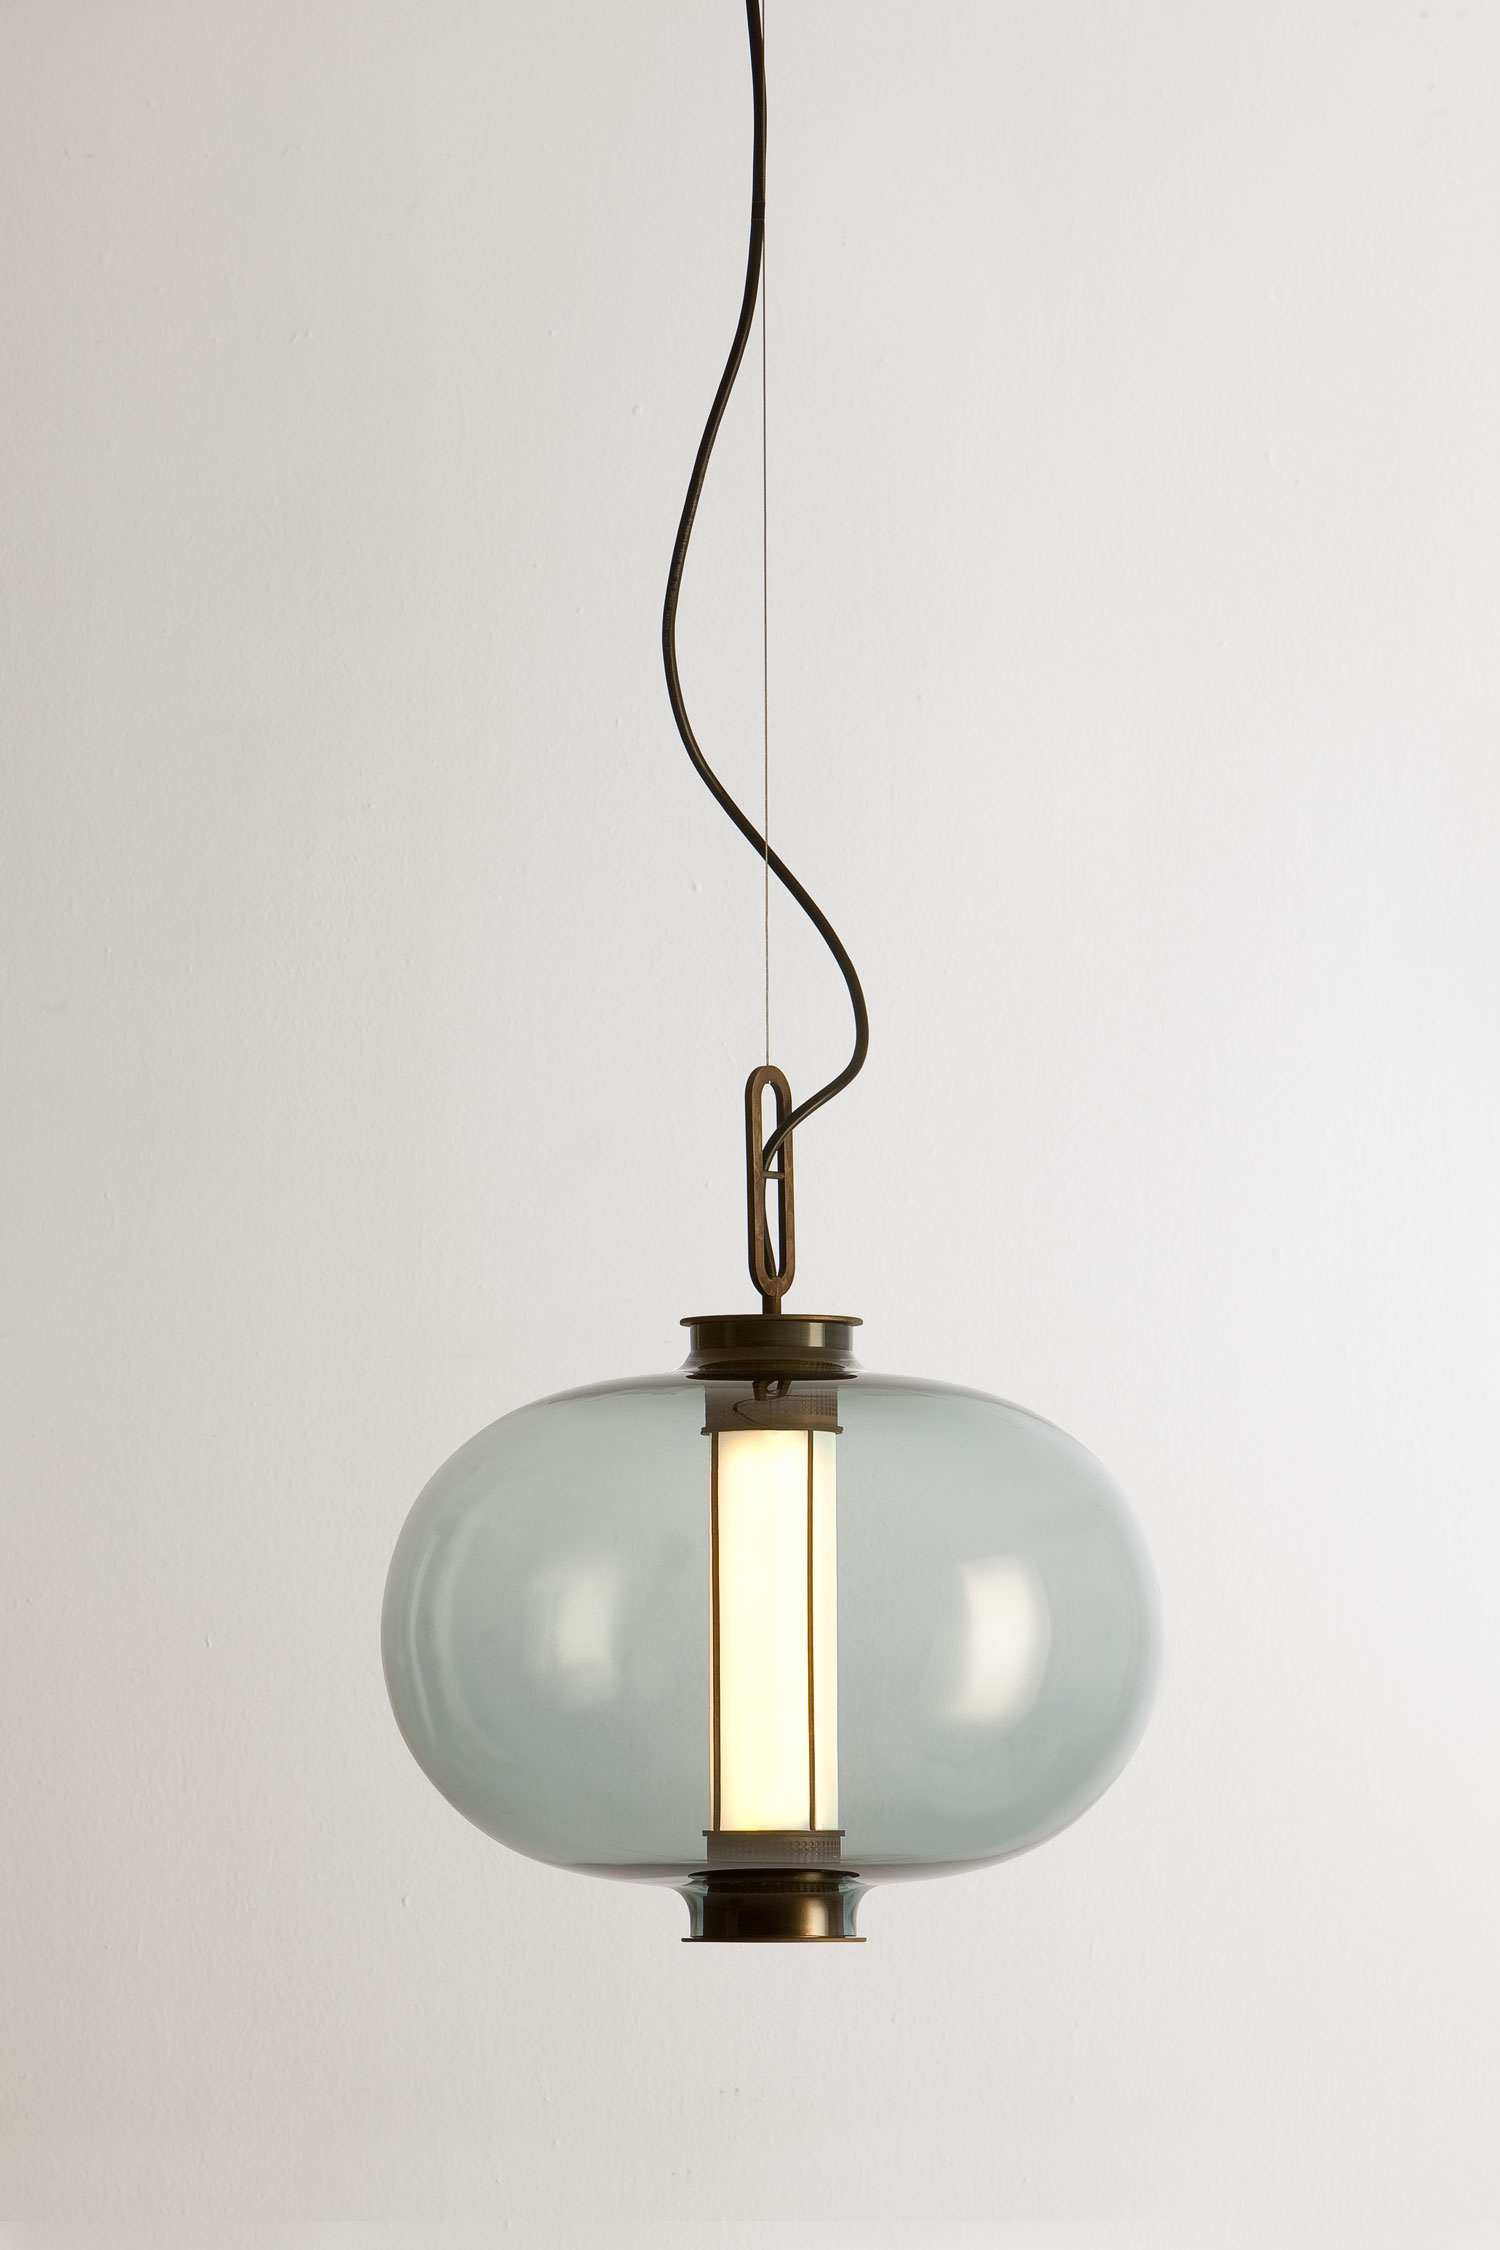 New Light Of Myanmar Daily Journal: Parachilna's New Lighting Collection By Neri & Hu